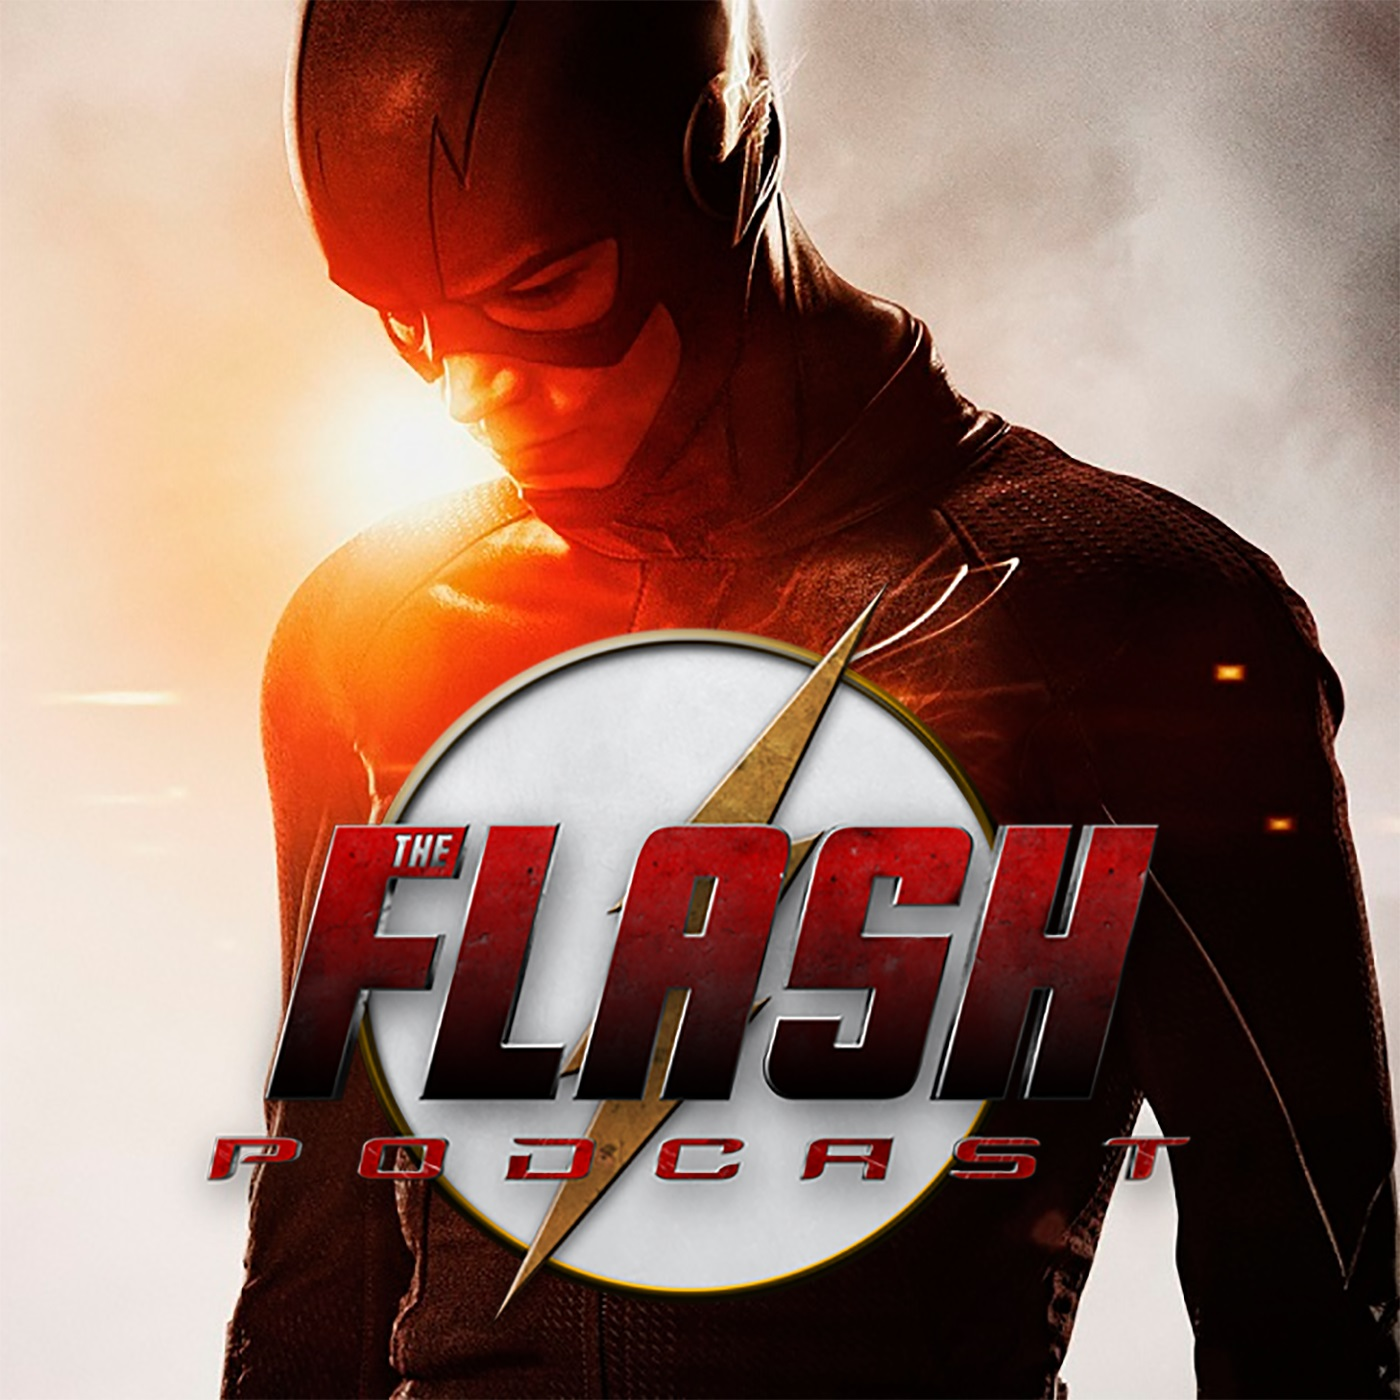 The Flash Podcast Season 2.5 - Episode 16: Barry Allen/The Flash In Season 2